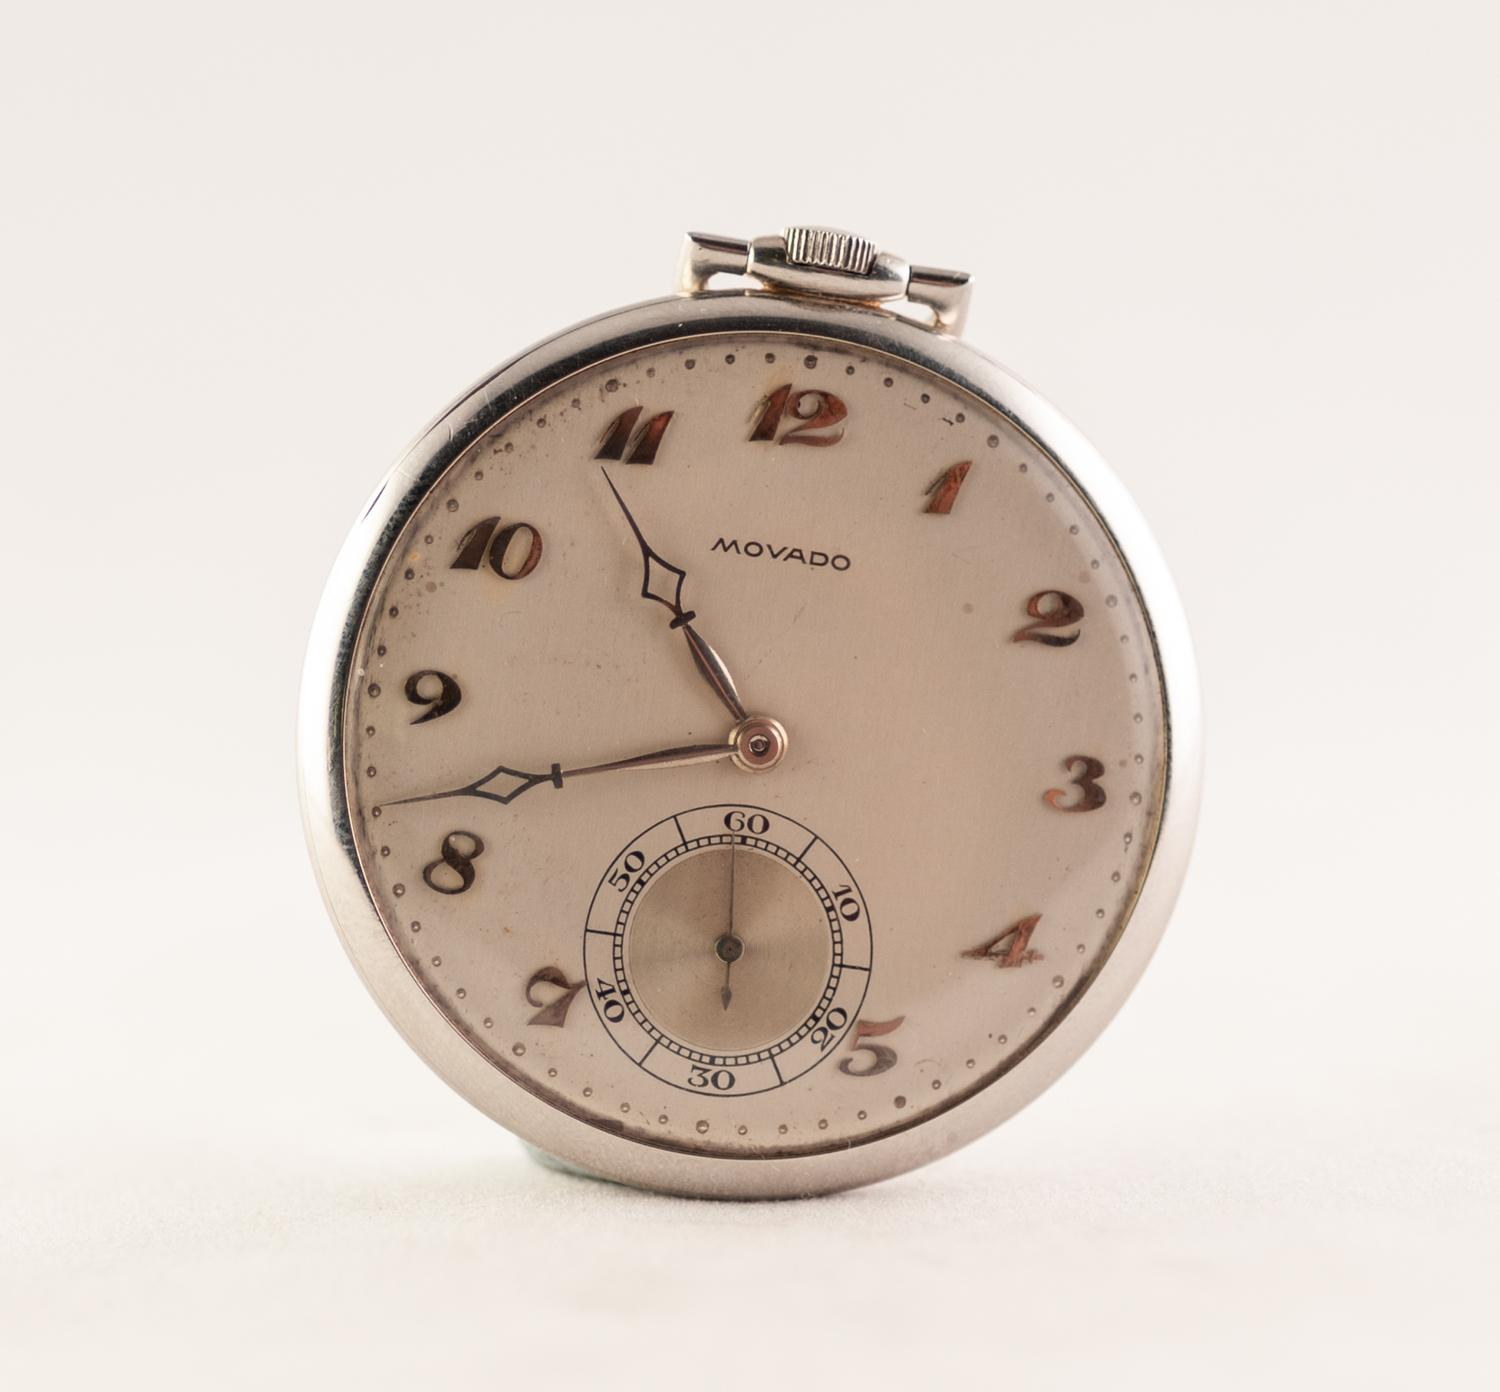 Lot 14 - MOVADO SWISS OPEN FACED DRESS POCKET WATCH IN PLATINUM CASE no 253908/02588, sixteen jewel keyless